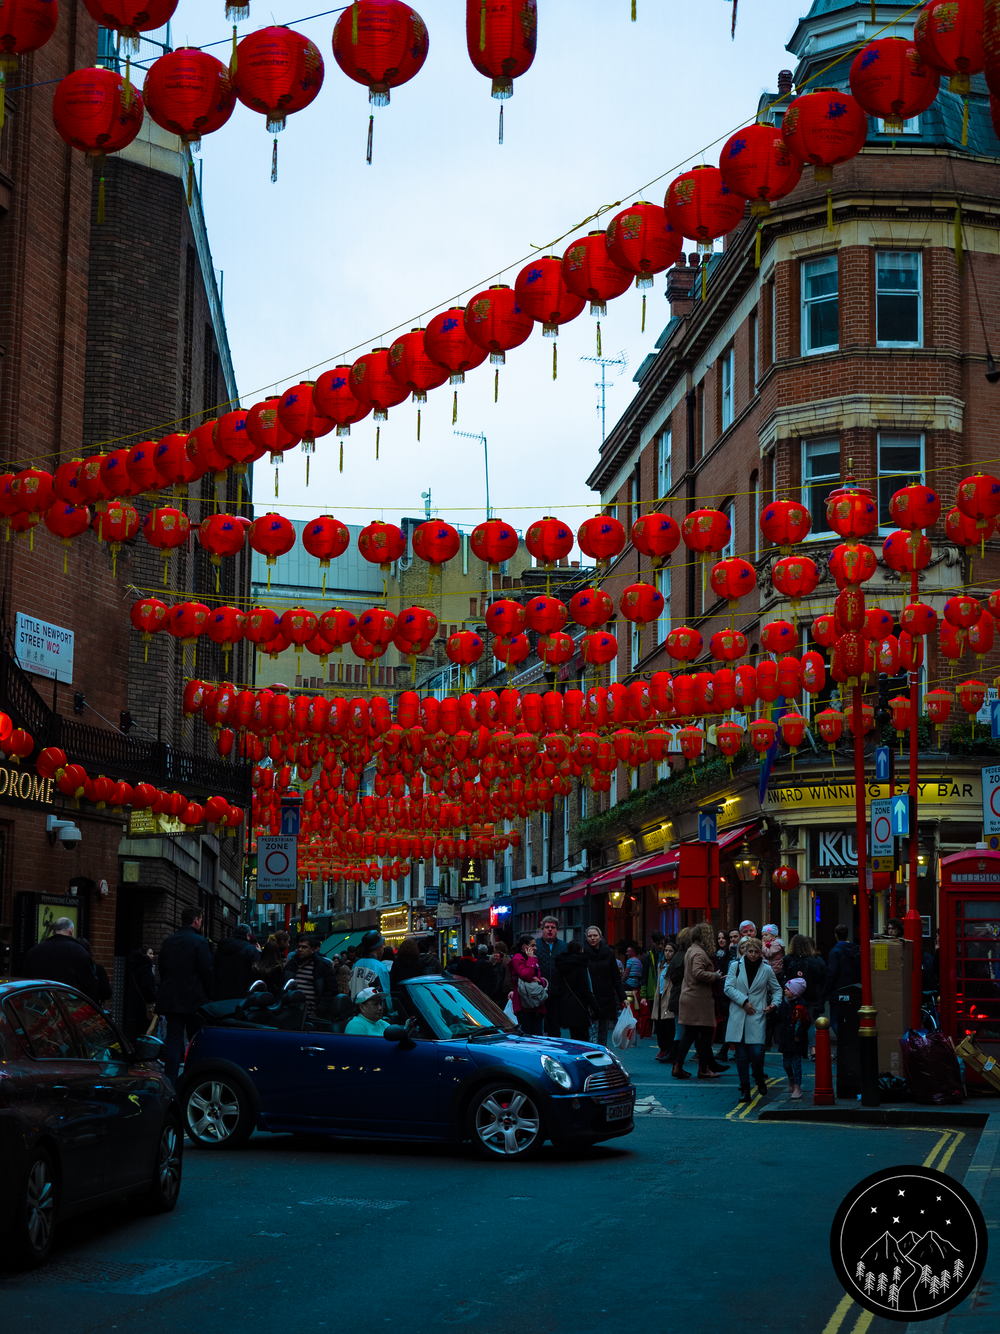 Image Description: Street photograph filled with people and buildings. From the buildings hang red China lanterns all the way up and down the street. There are also some cars in the street in front of the crowd of people which spans very far back.